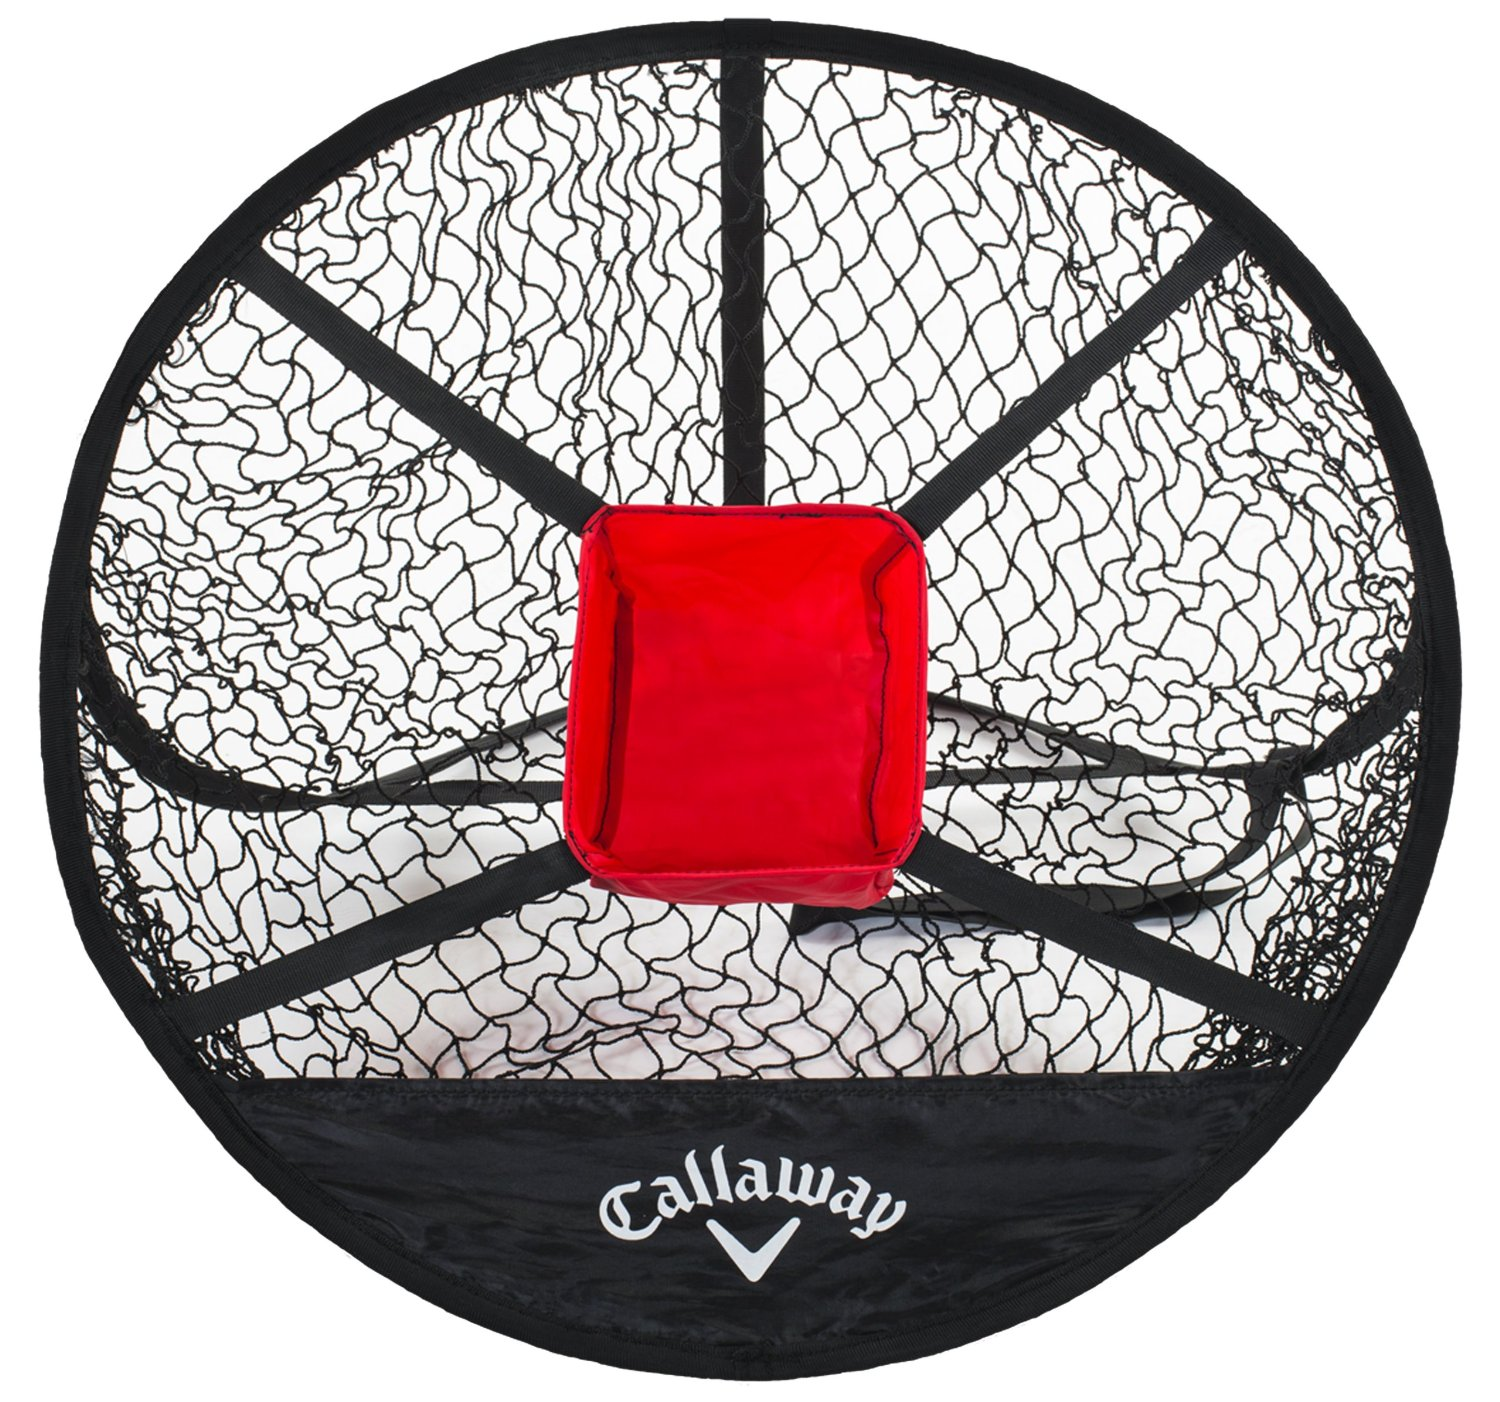 IZZO Golf Callaway Chipping Nets